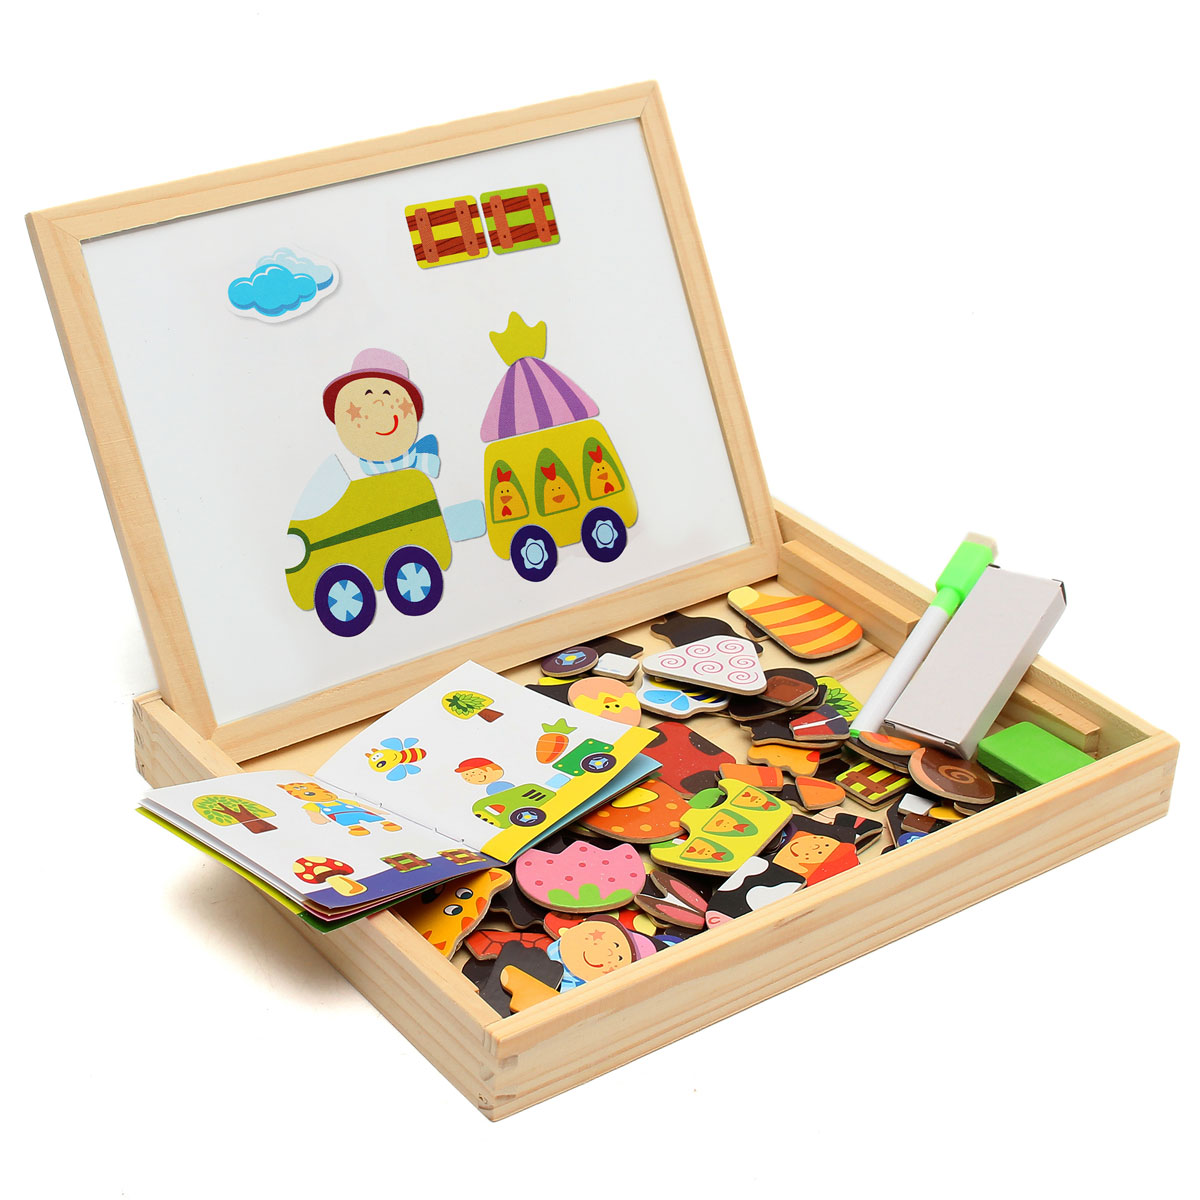 New-Arrival-Drawing-Writing-Board-Magnetic-Board-Puzzle-Double-Easel-Kid-Wooden-Toy-Gift-Children-Intelligence-Development-Toy-2